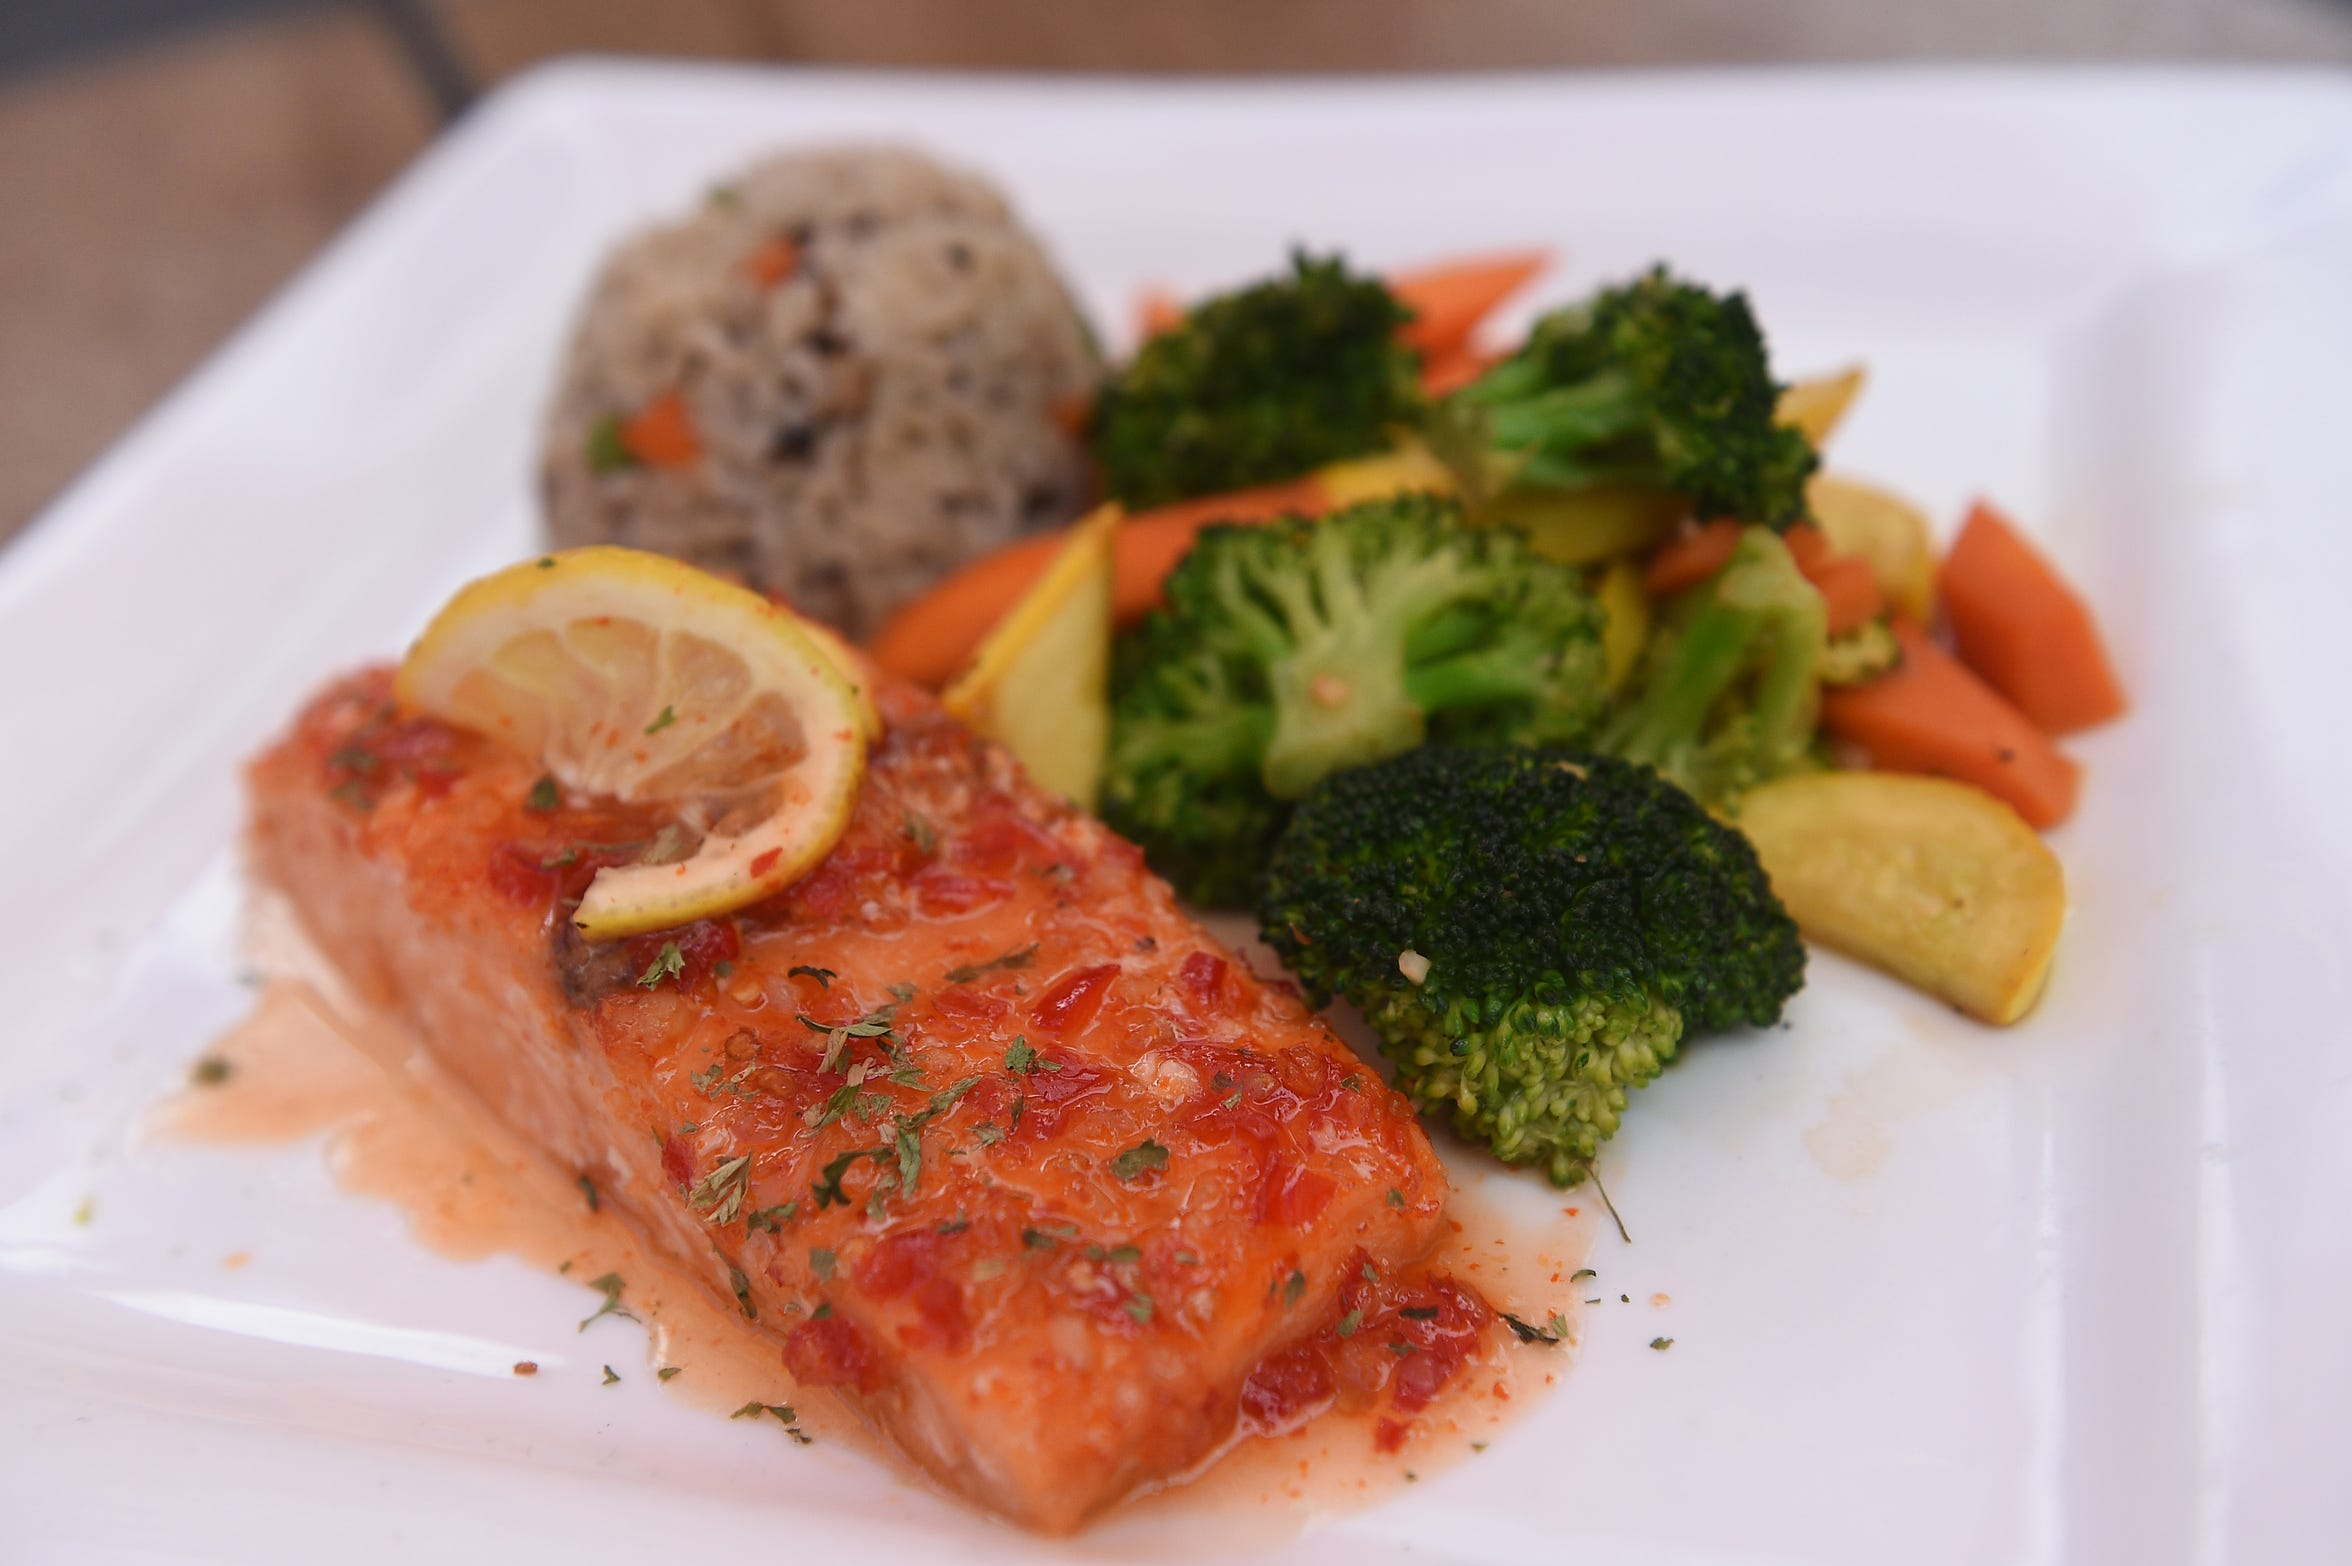 Baked salmon with Thai chili sauce is a new dish on the menu at Mustang Ranch Lounge, part of the Mustang Ranch brothel complex about 15 miles east of Reno.